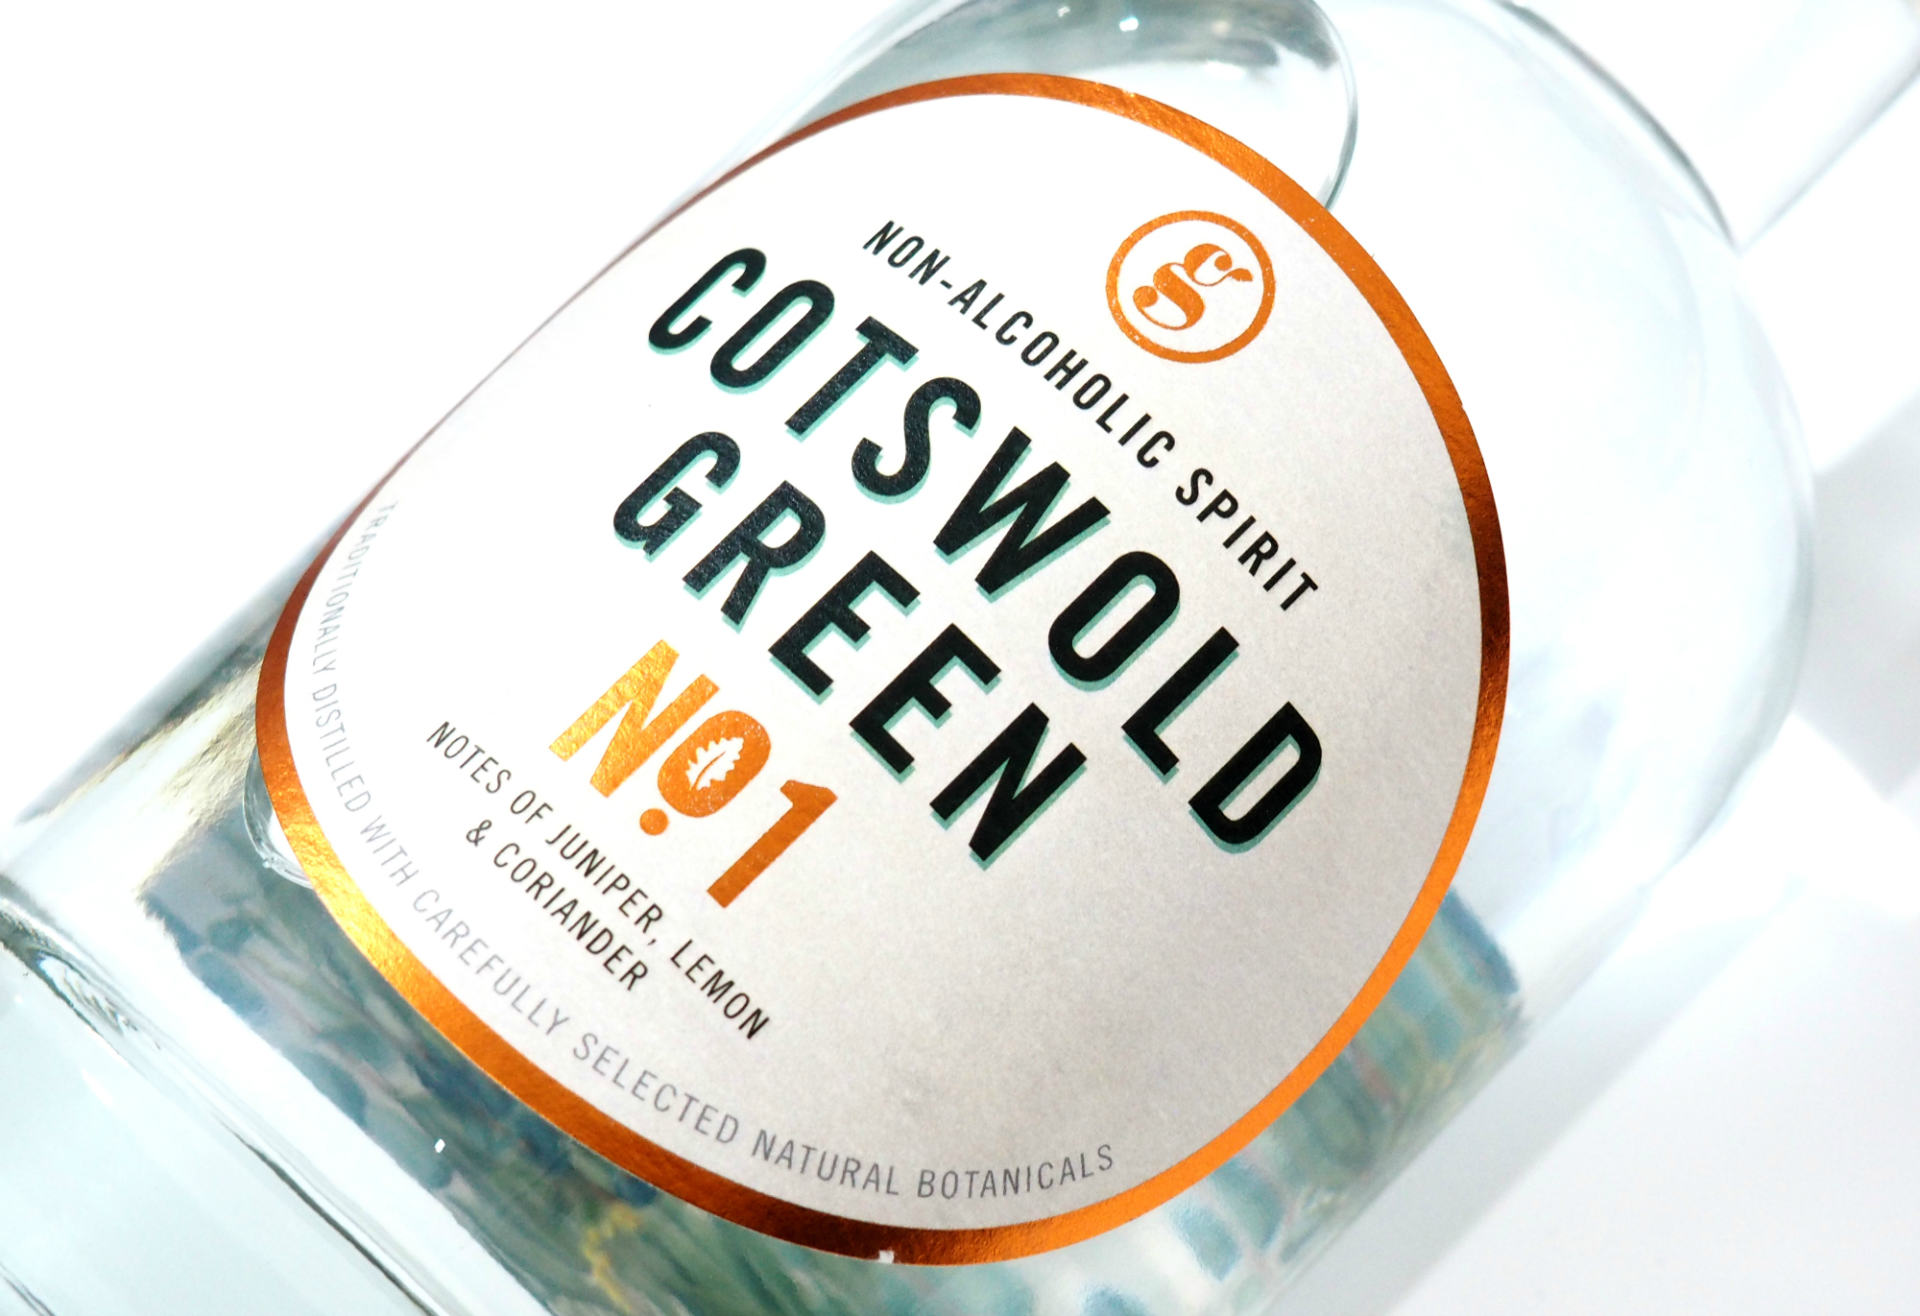 Cotswold Green Non-Alcoholic Spirit